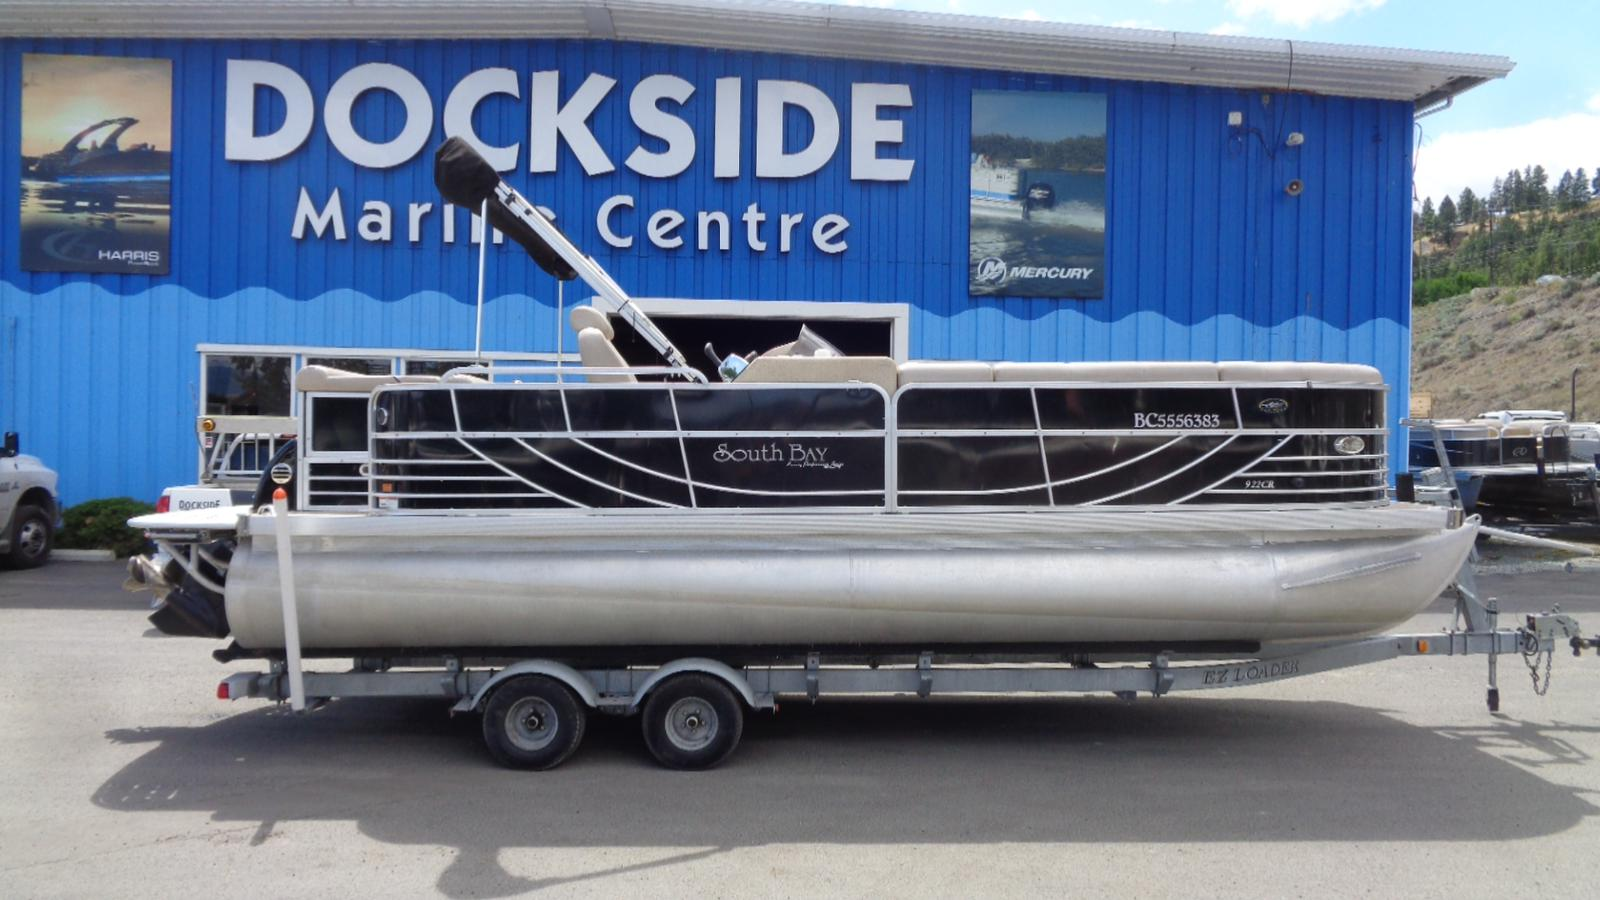 For Sale: 2010 South Bay 922 Cr 25ft<br/>Dockside Marine Centre, LTD.